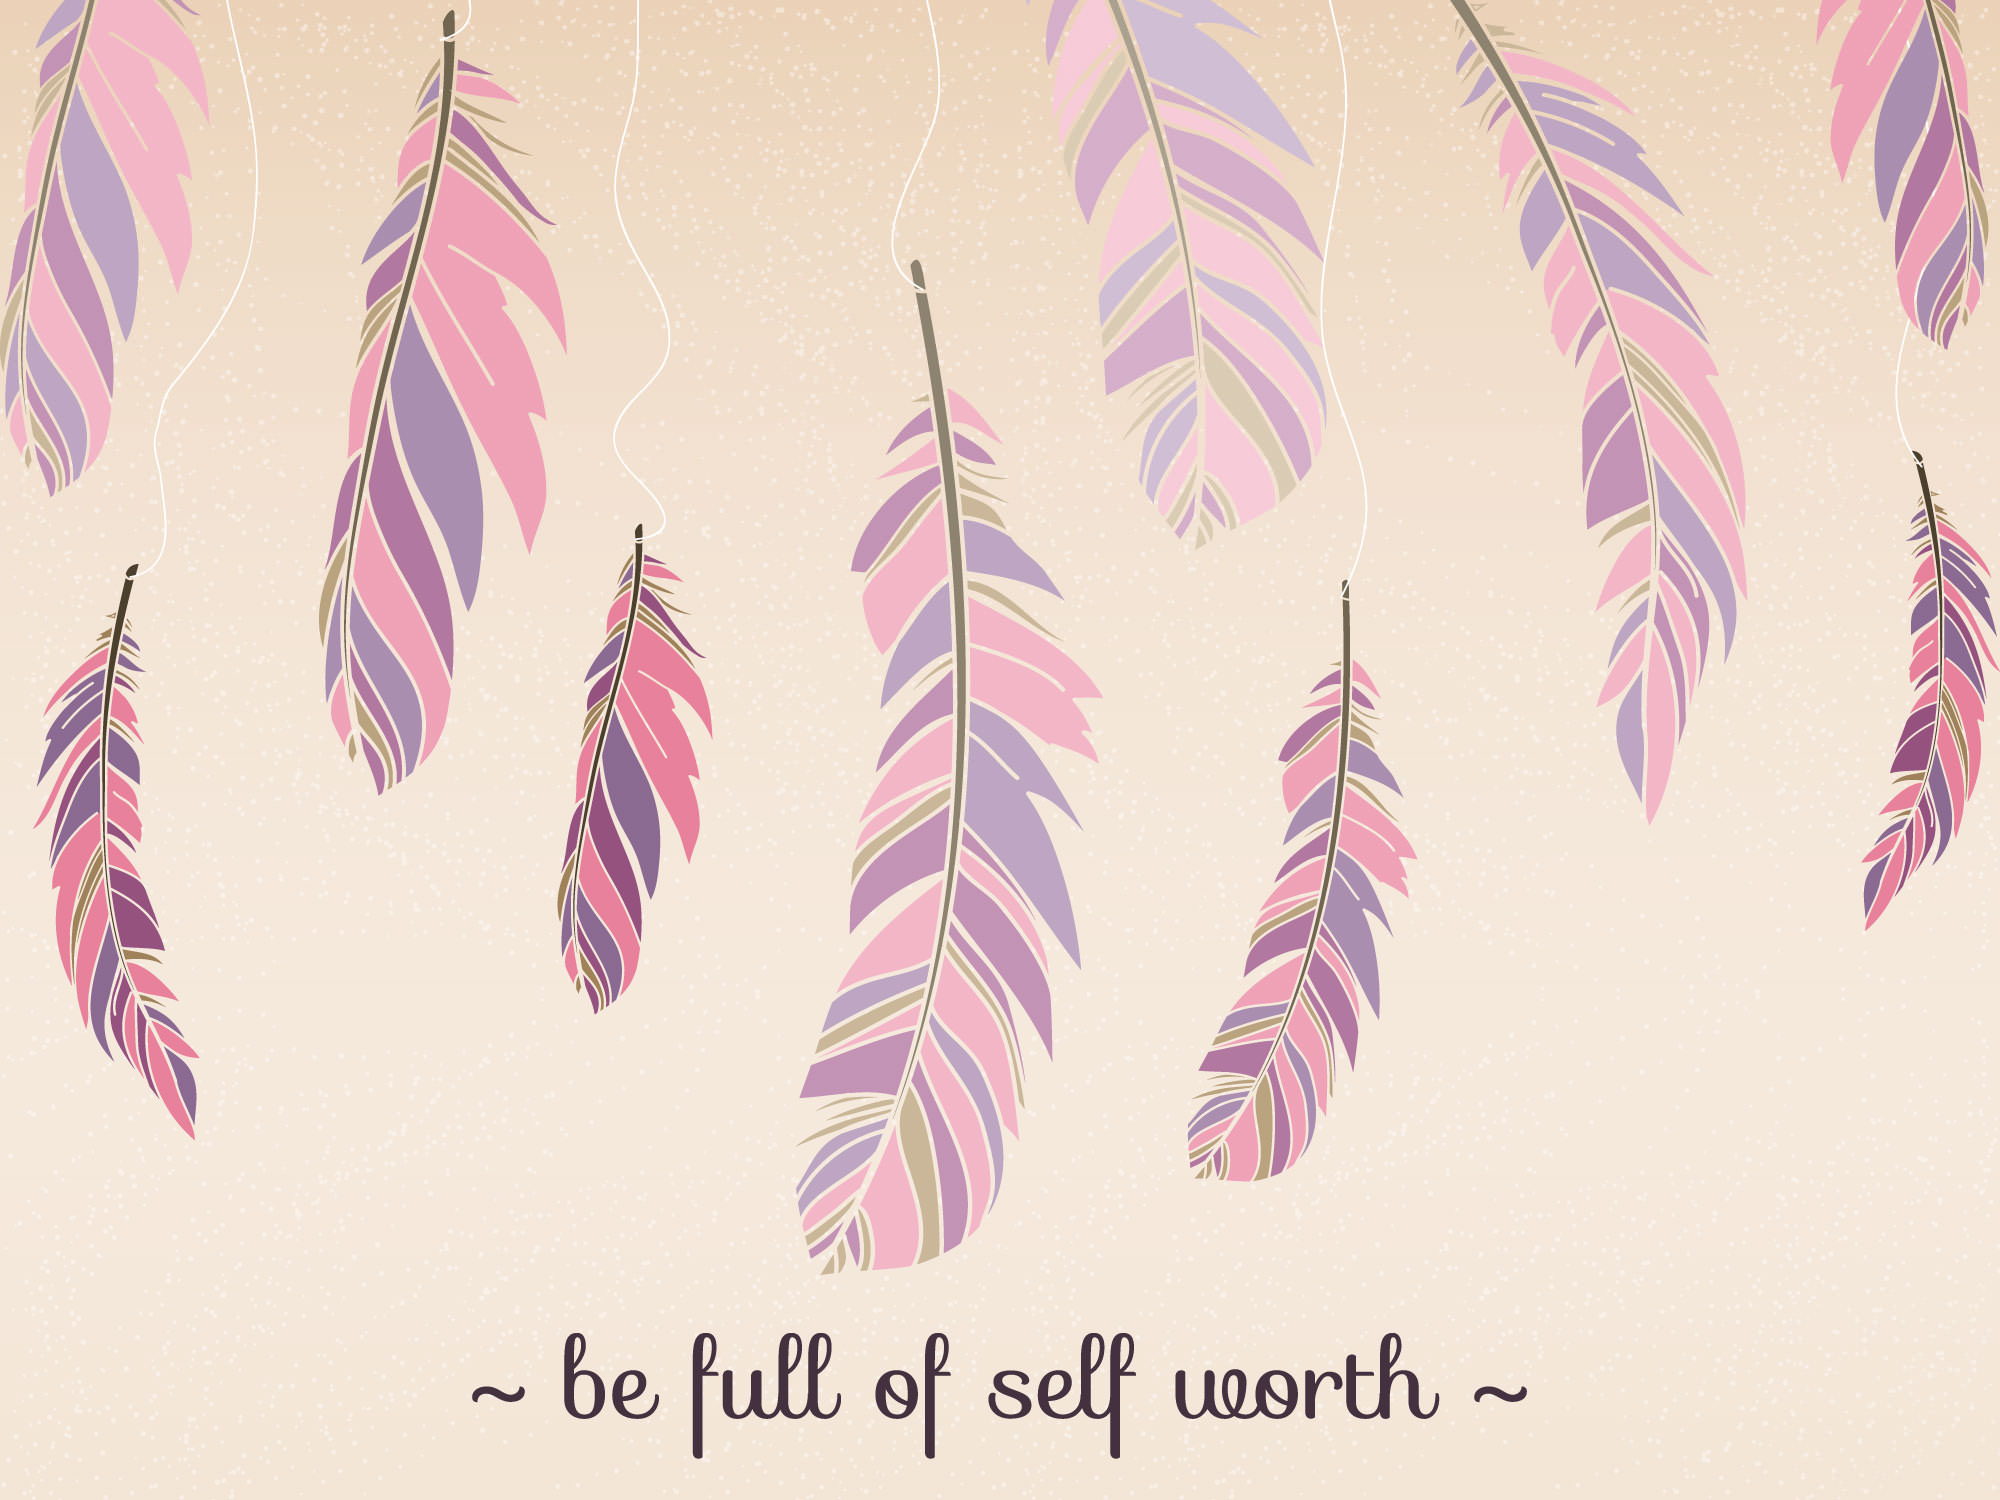 befullofselfworth_download